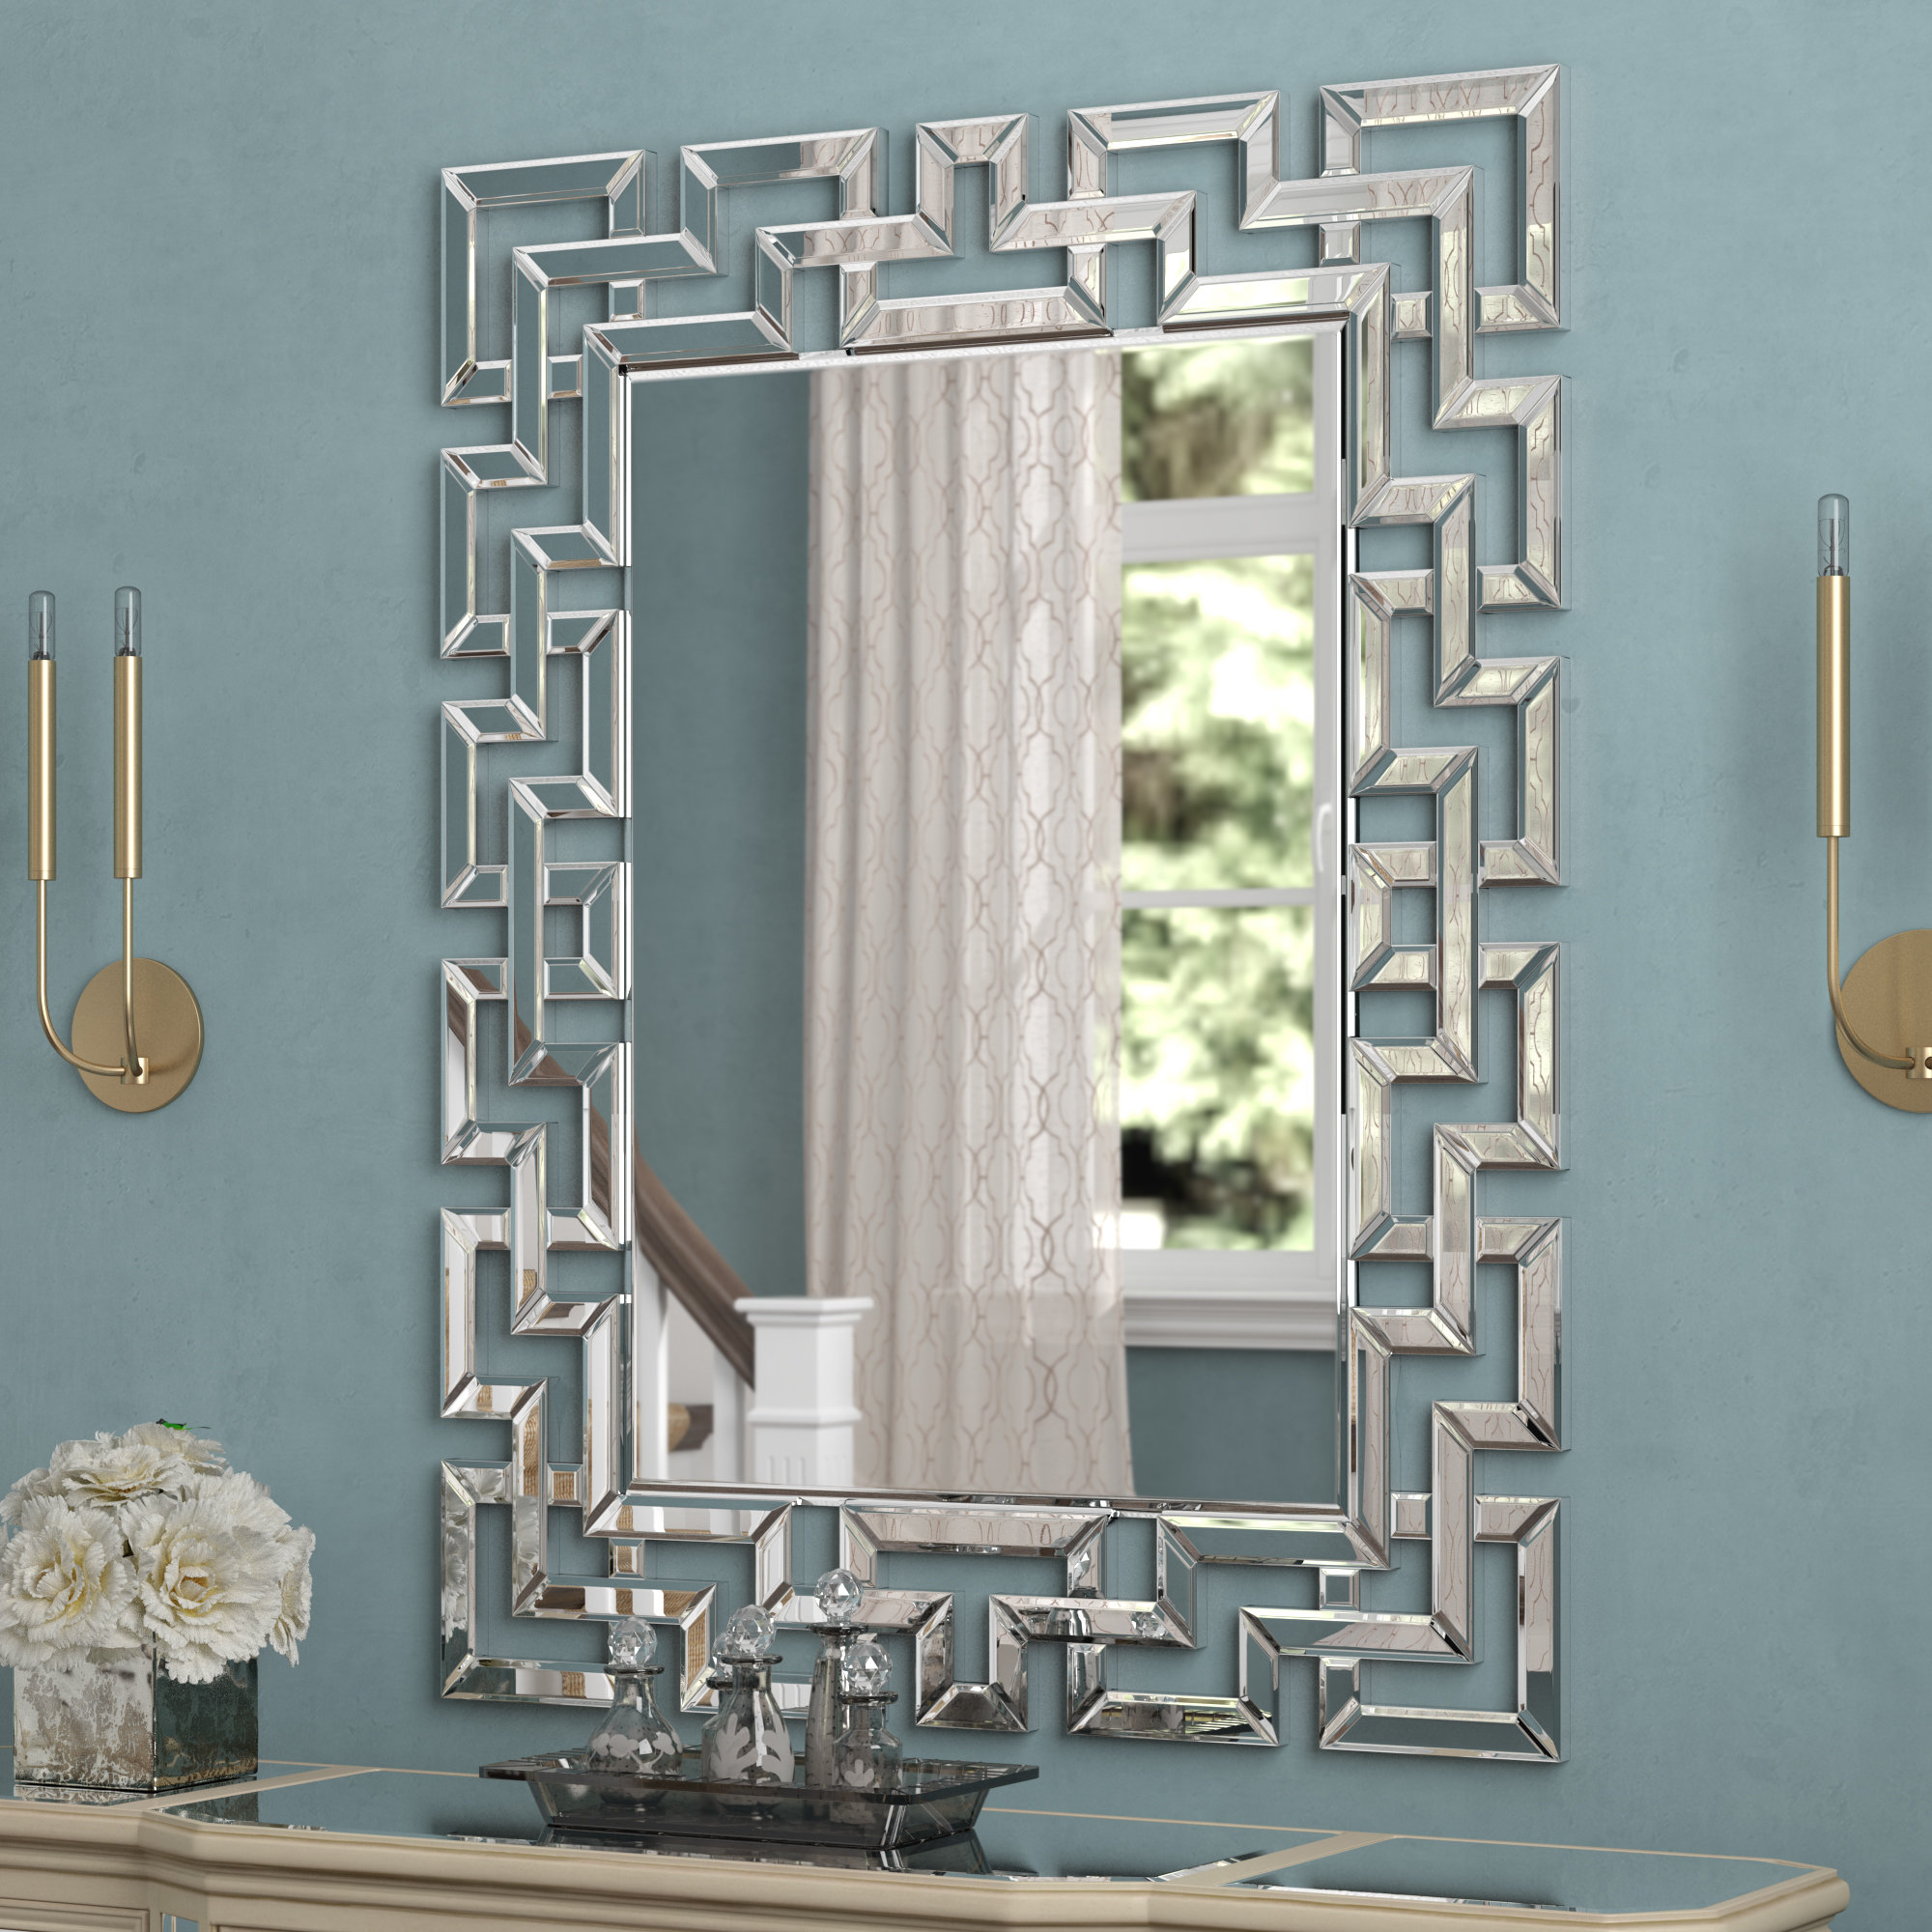 Caja Rectangle Glass Frame Wall Mirrors Intended For 2020 Glam Rectangular Accent Wall Mirror (View 11 of 20)